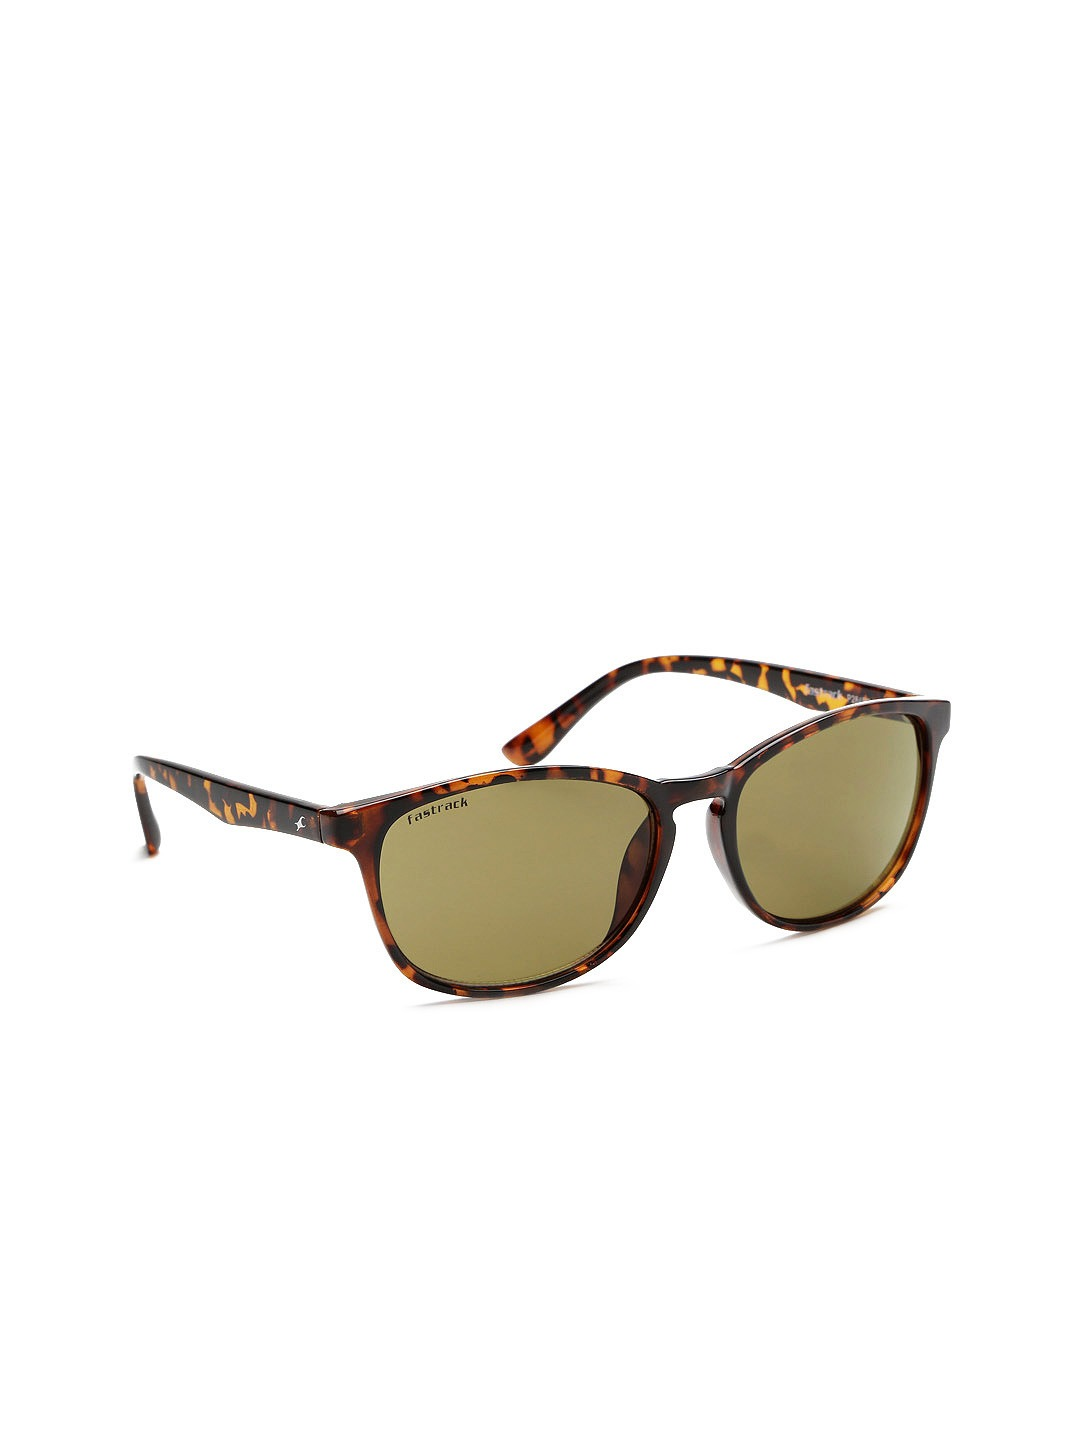 Power Sunglasses Online Ping India  fastrack power sunglasses football fastrack power sunglasses